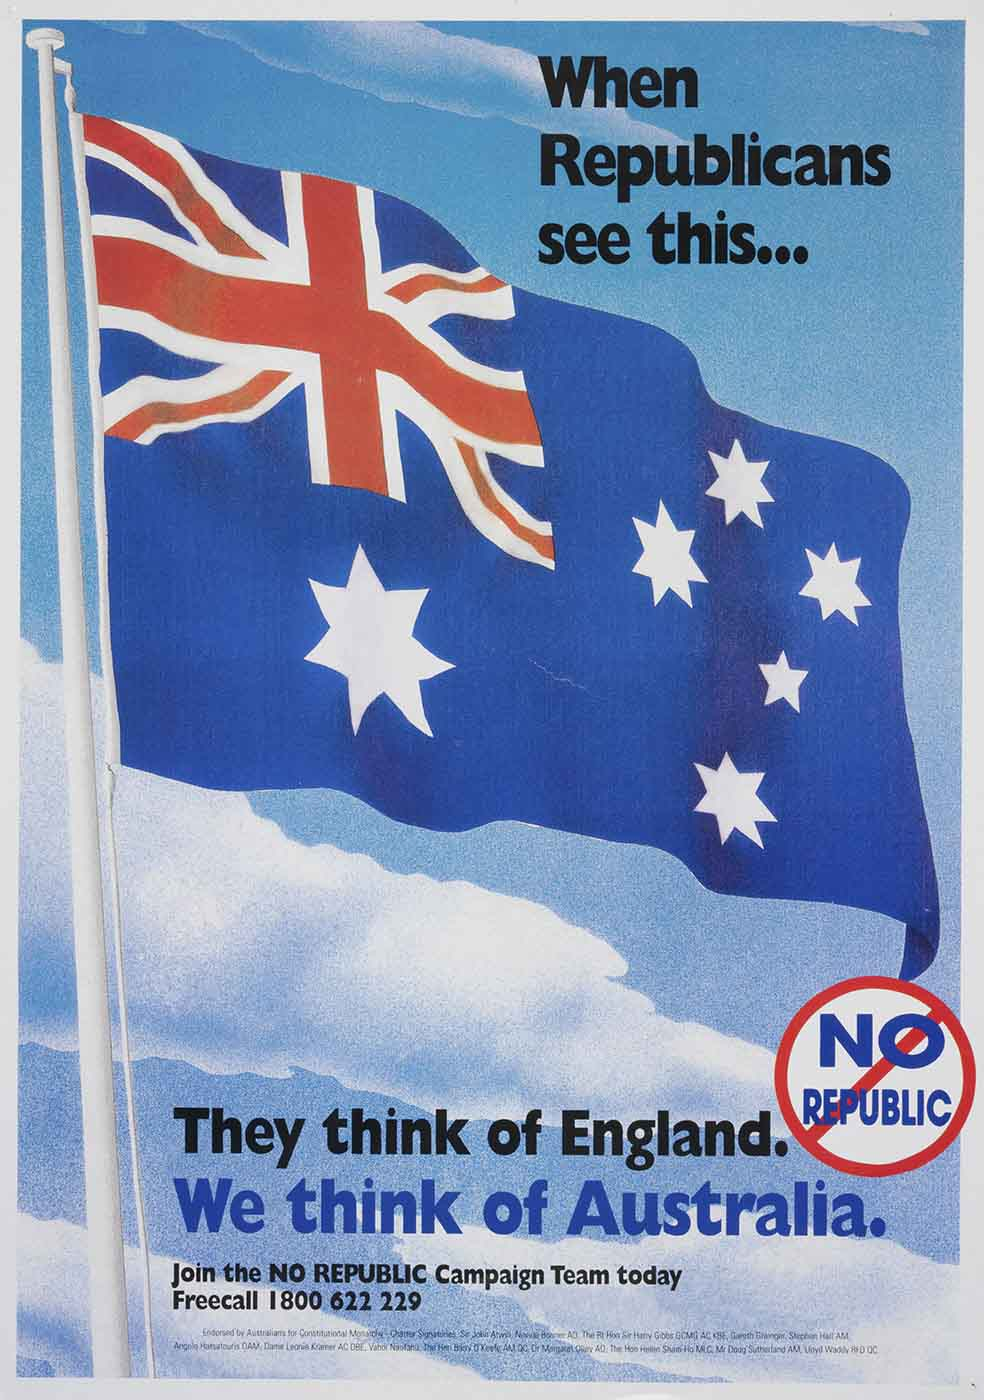 Poster with an image of the Australian flag against a blue cloudy sky background. The text reads: 'When Republicans see this ... They think of England. We think of Australia. Join the NO REPUBLIC Campaign Team today. Freecall 1800 622 229. NO REPUBLIC'. - click to view larger image